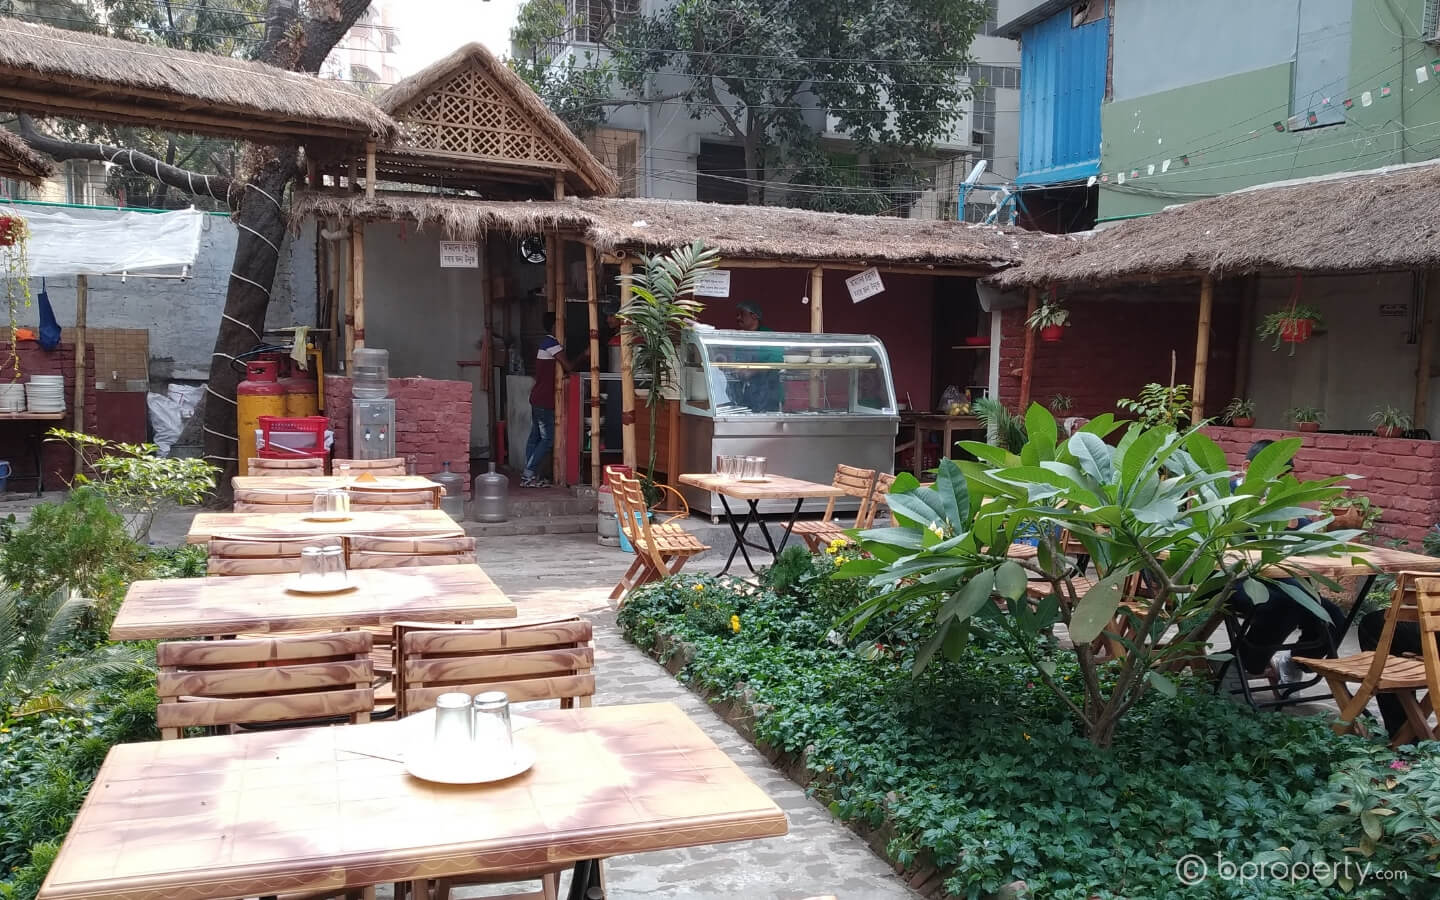 Khanadda is one of the best restaurants in Khilgaon for Grill and chaap